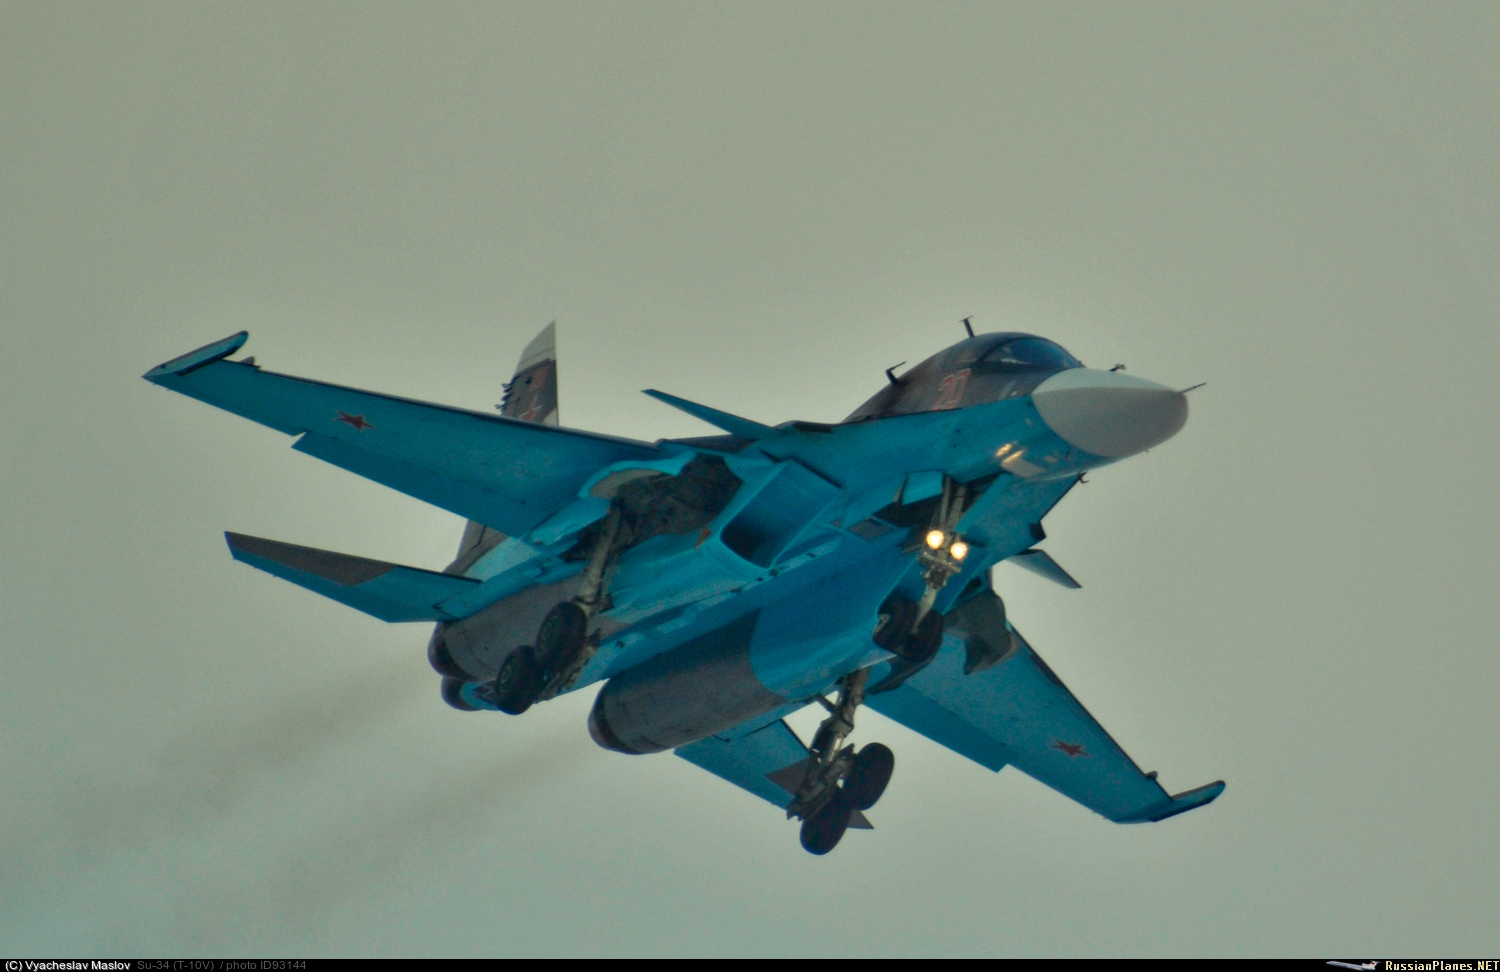 http://russianplanes.net/images/to94000/093144.jpg